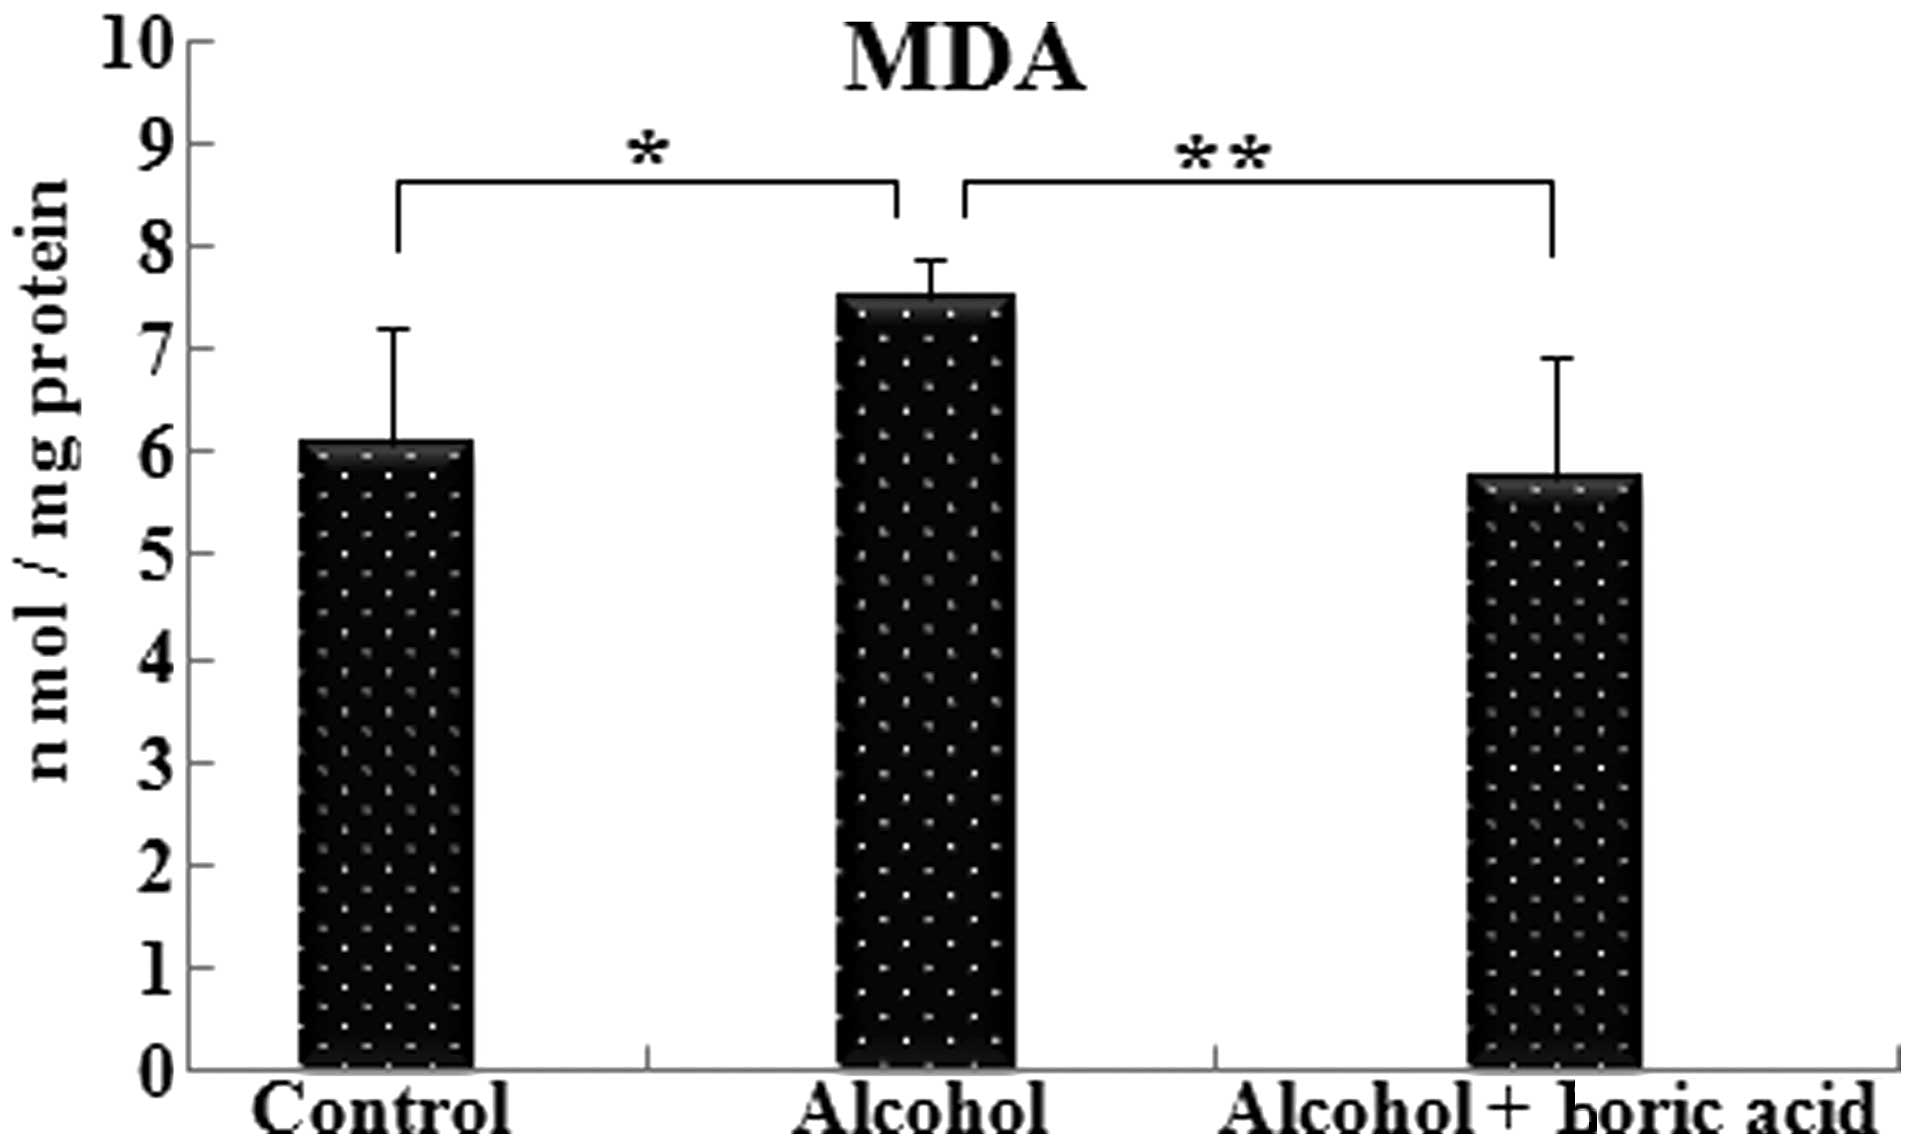 Effect of boric acid on oxidative stress in rats with fetal